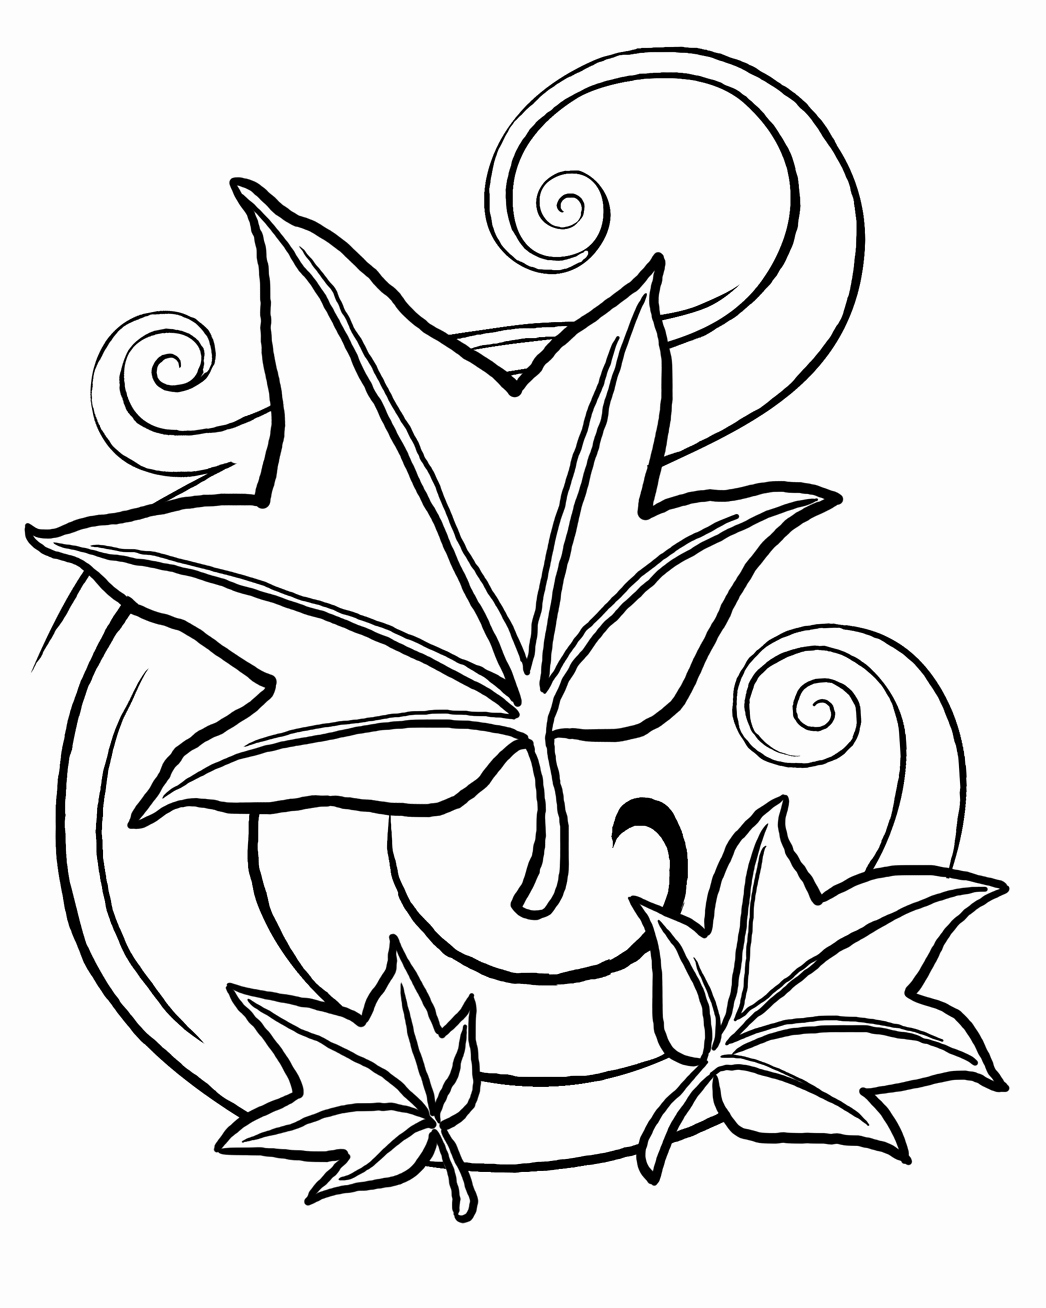 1046x1308 Fall Leaves Coloring Pages Printable Awesome Free Printable Leaf